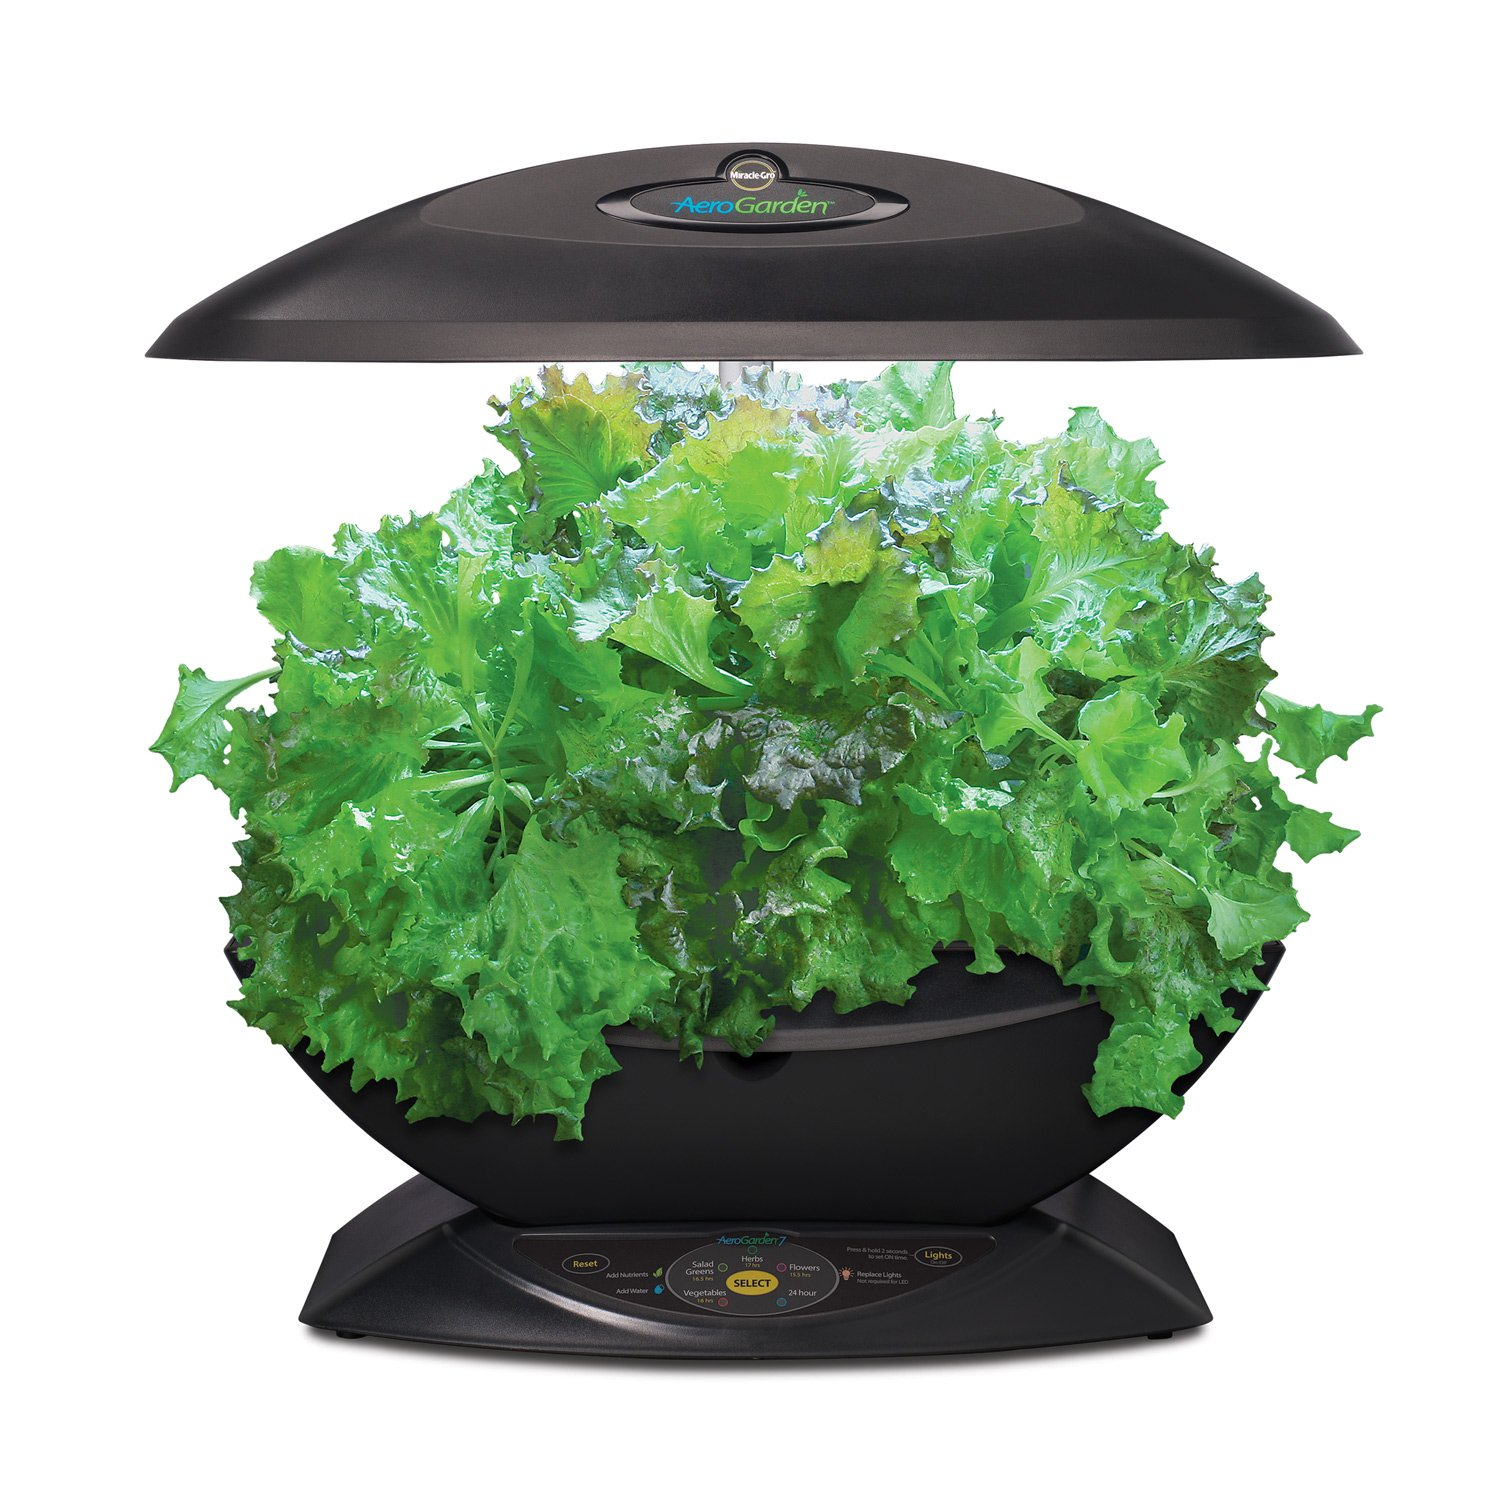 Amazon aerogarden 7 with gourmet herb seed kit plant amazon aerogarden 7 with gourmet herb seed kit plant germination kits garden outdoor workwithnaturefo